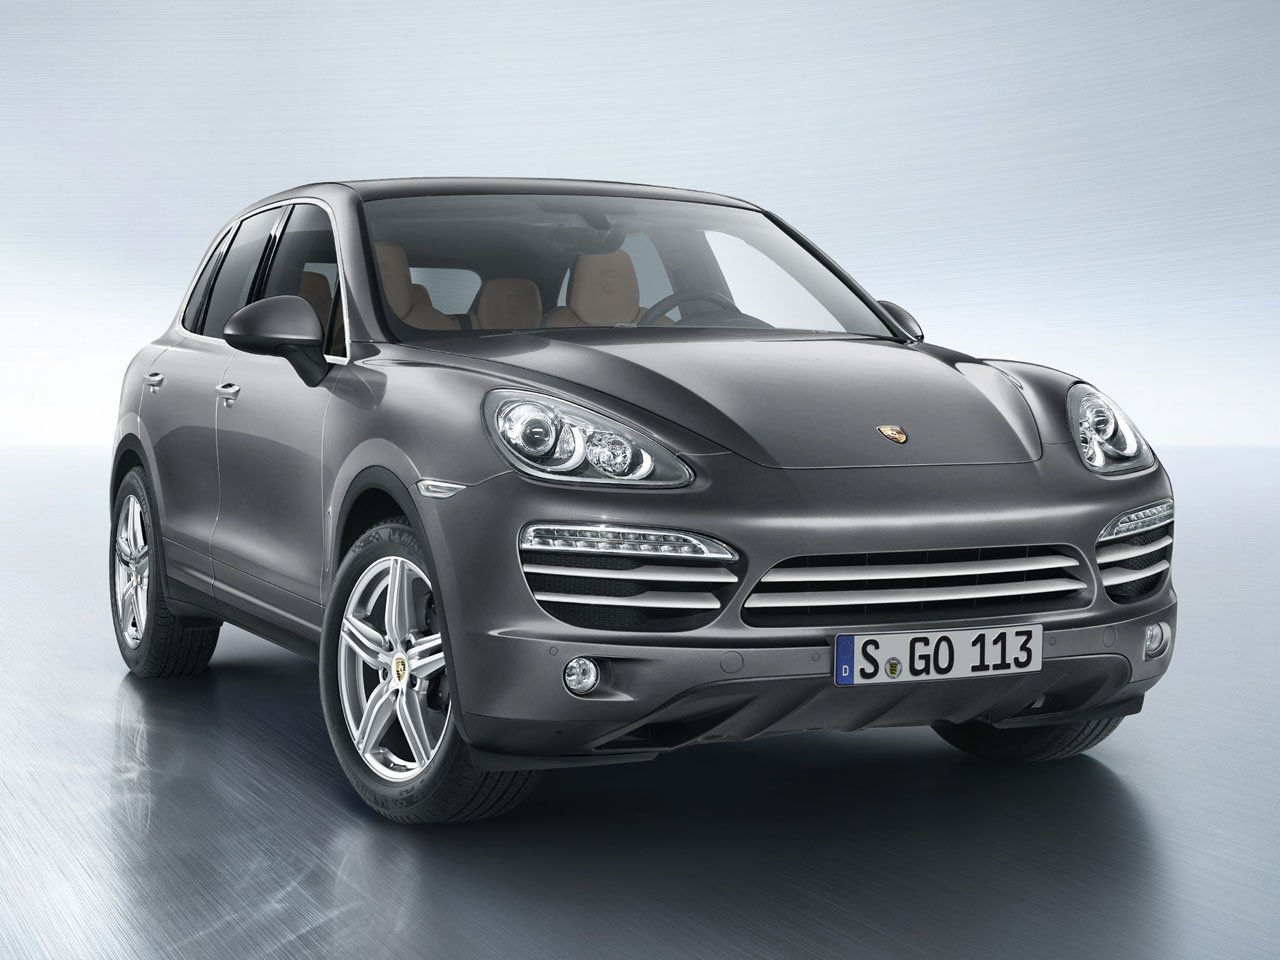 Harvest Invoices Pdf Porsche To Offer New Platinum Edition For Cayenne V Models  Sample Of Tax Invoice Word with Tax Return Receipt Excel Porsche To Offer New Platinum Edition For Cayenne V Models  Carcostcanada Goodwill Donation Form Receipt Pdf